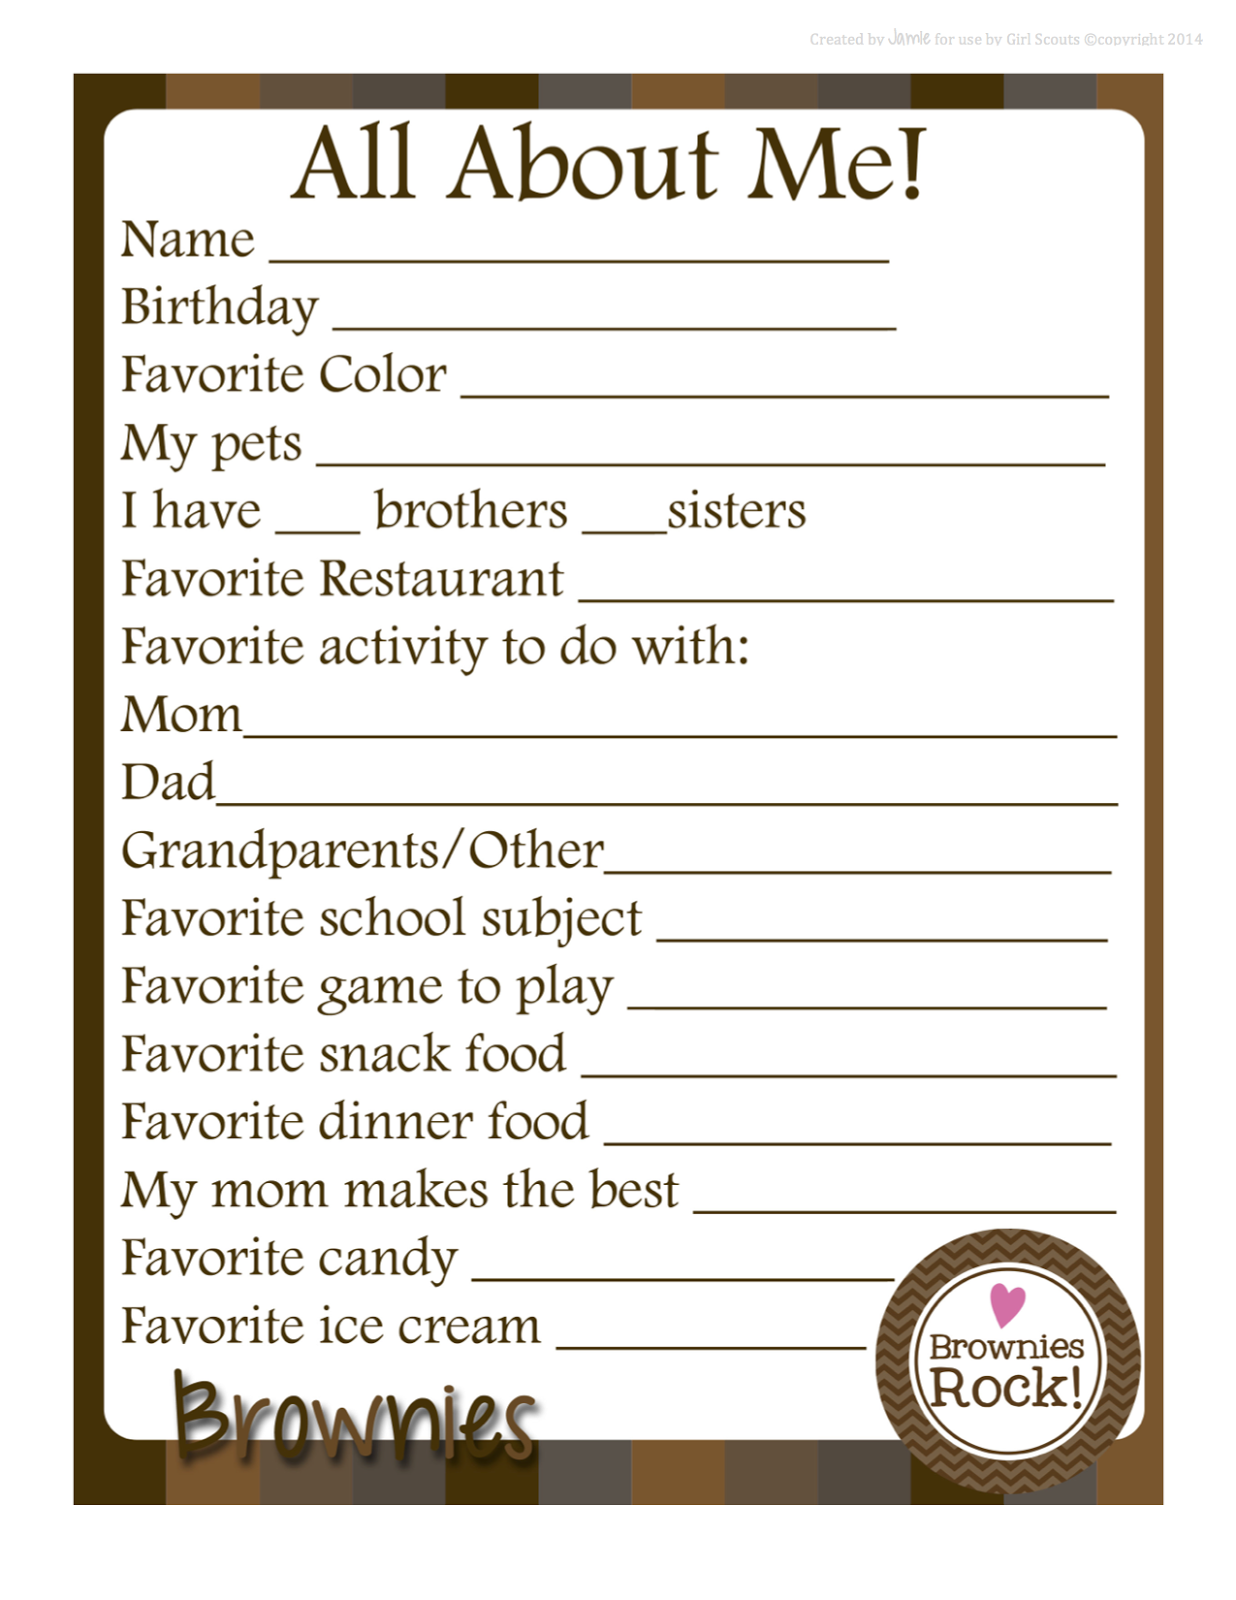 Girl scout scrapbook ideas - Girl Scouts About Me Free Printable